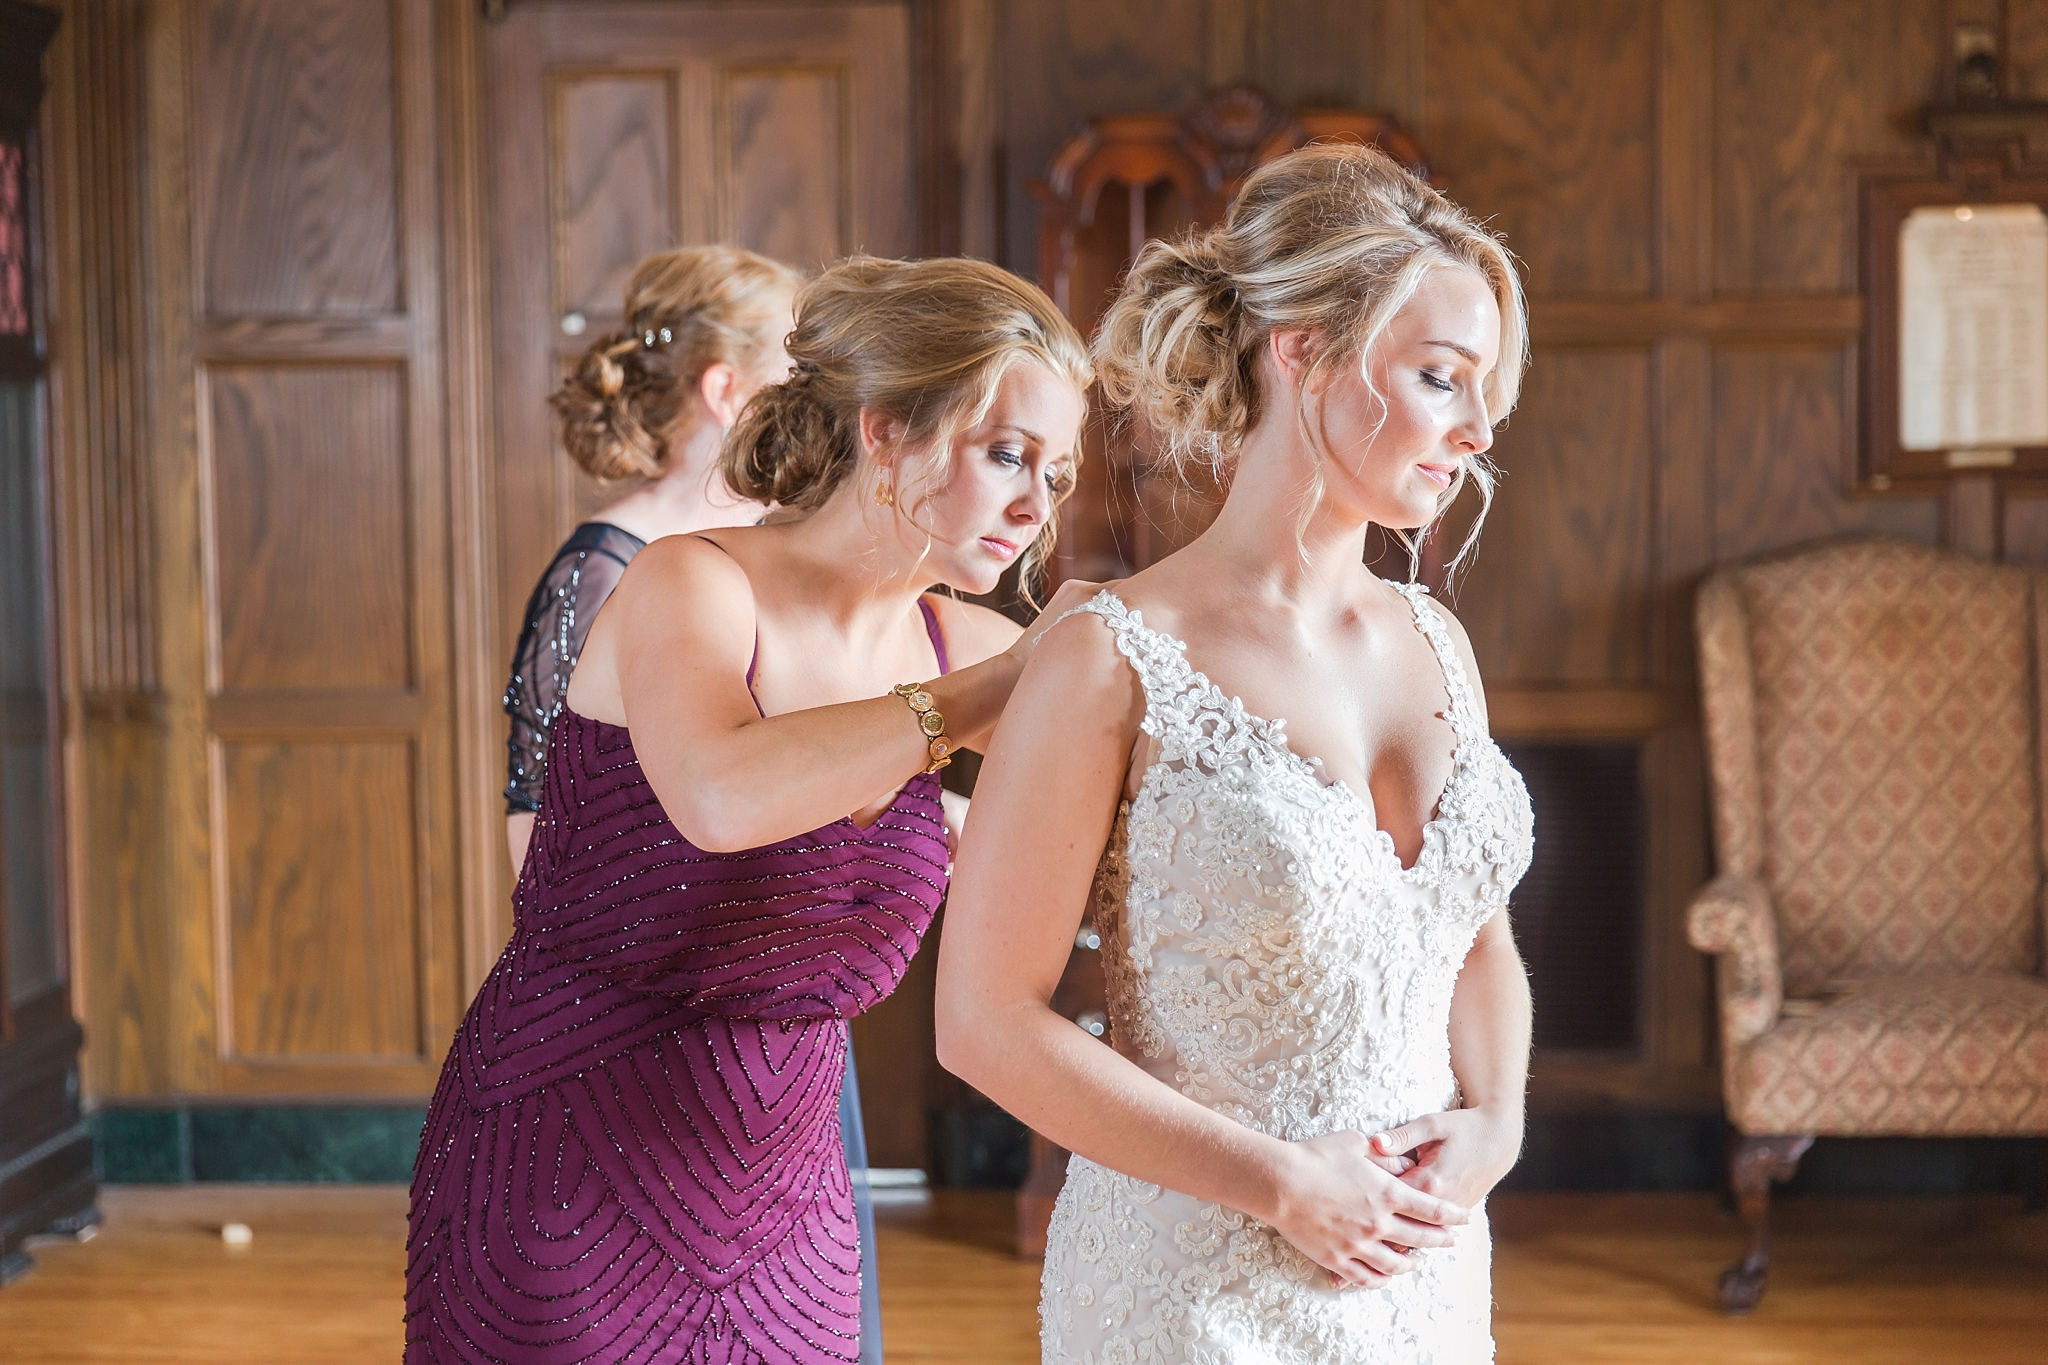 candid-romantic-wedding-photos-at-the-masonic-temple-belle-isle-detroit-institute-of-arts-in-detroit-michigan-by-courtney-carolyn-photography_0008.jpg